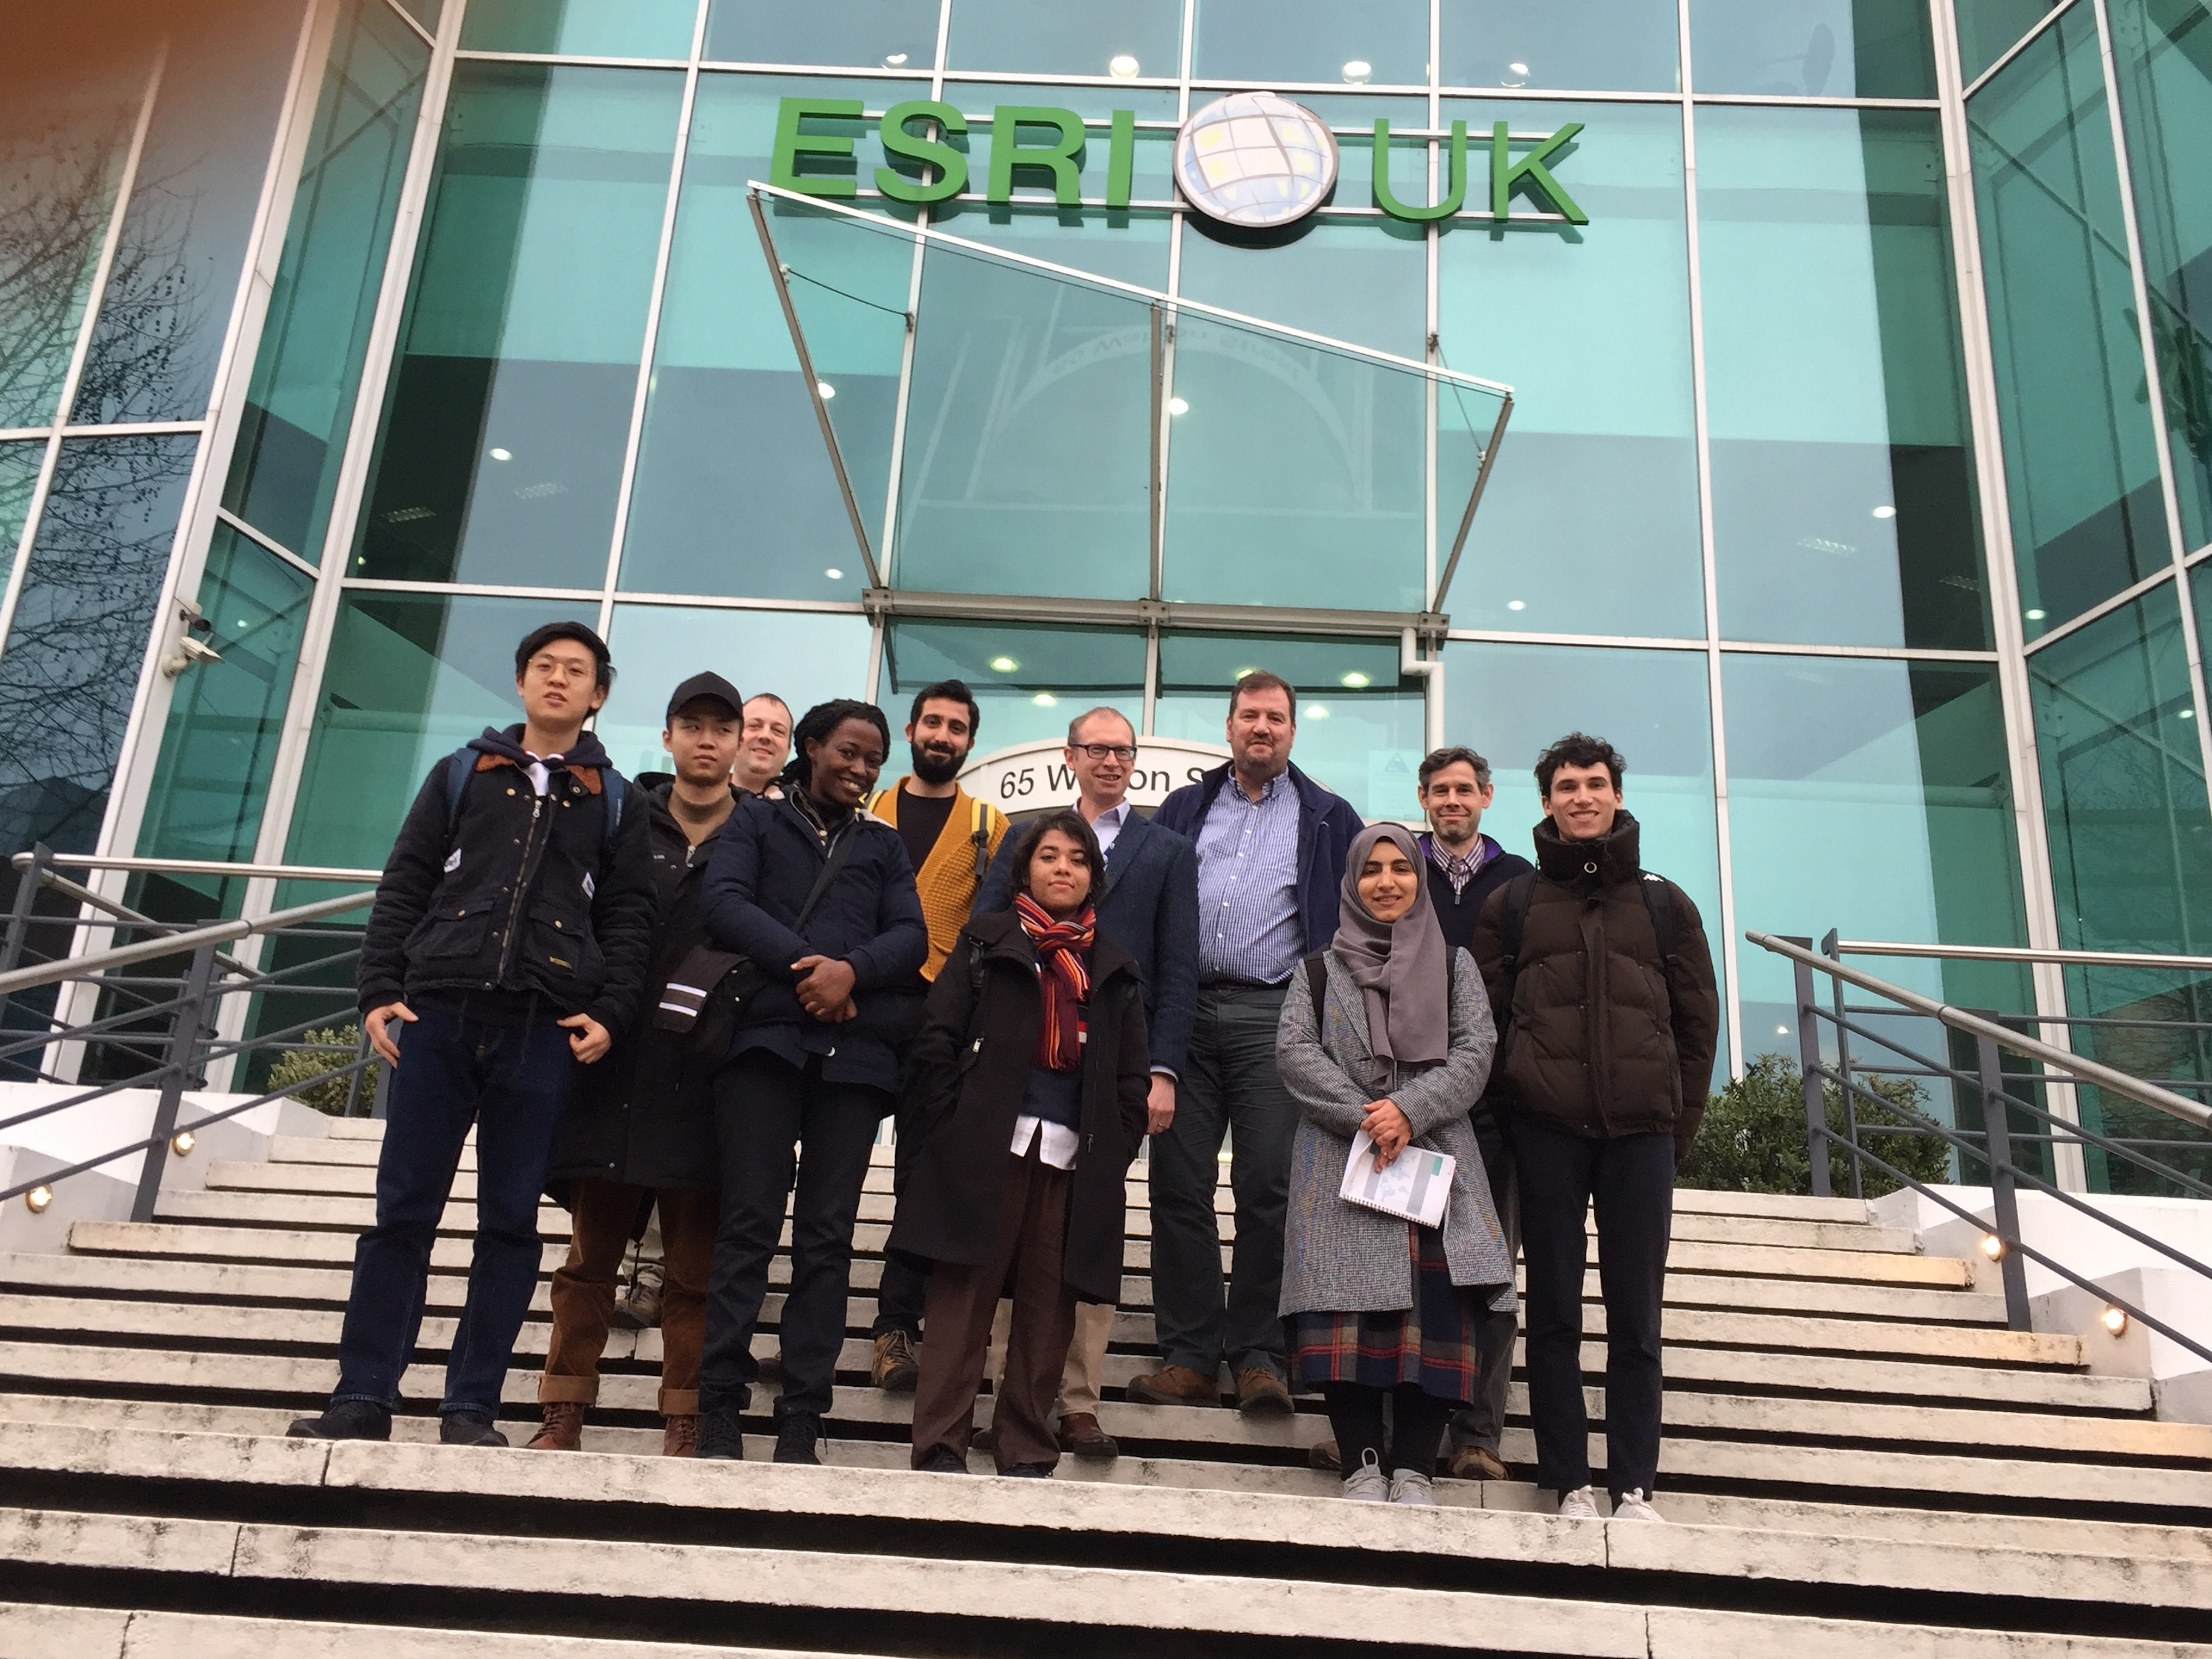 MSc GIM students visiting Esri(UK) Ltd.